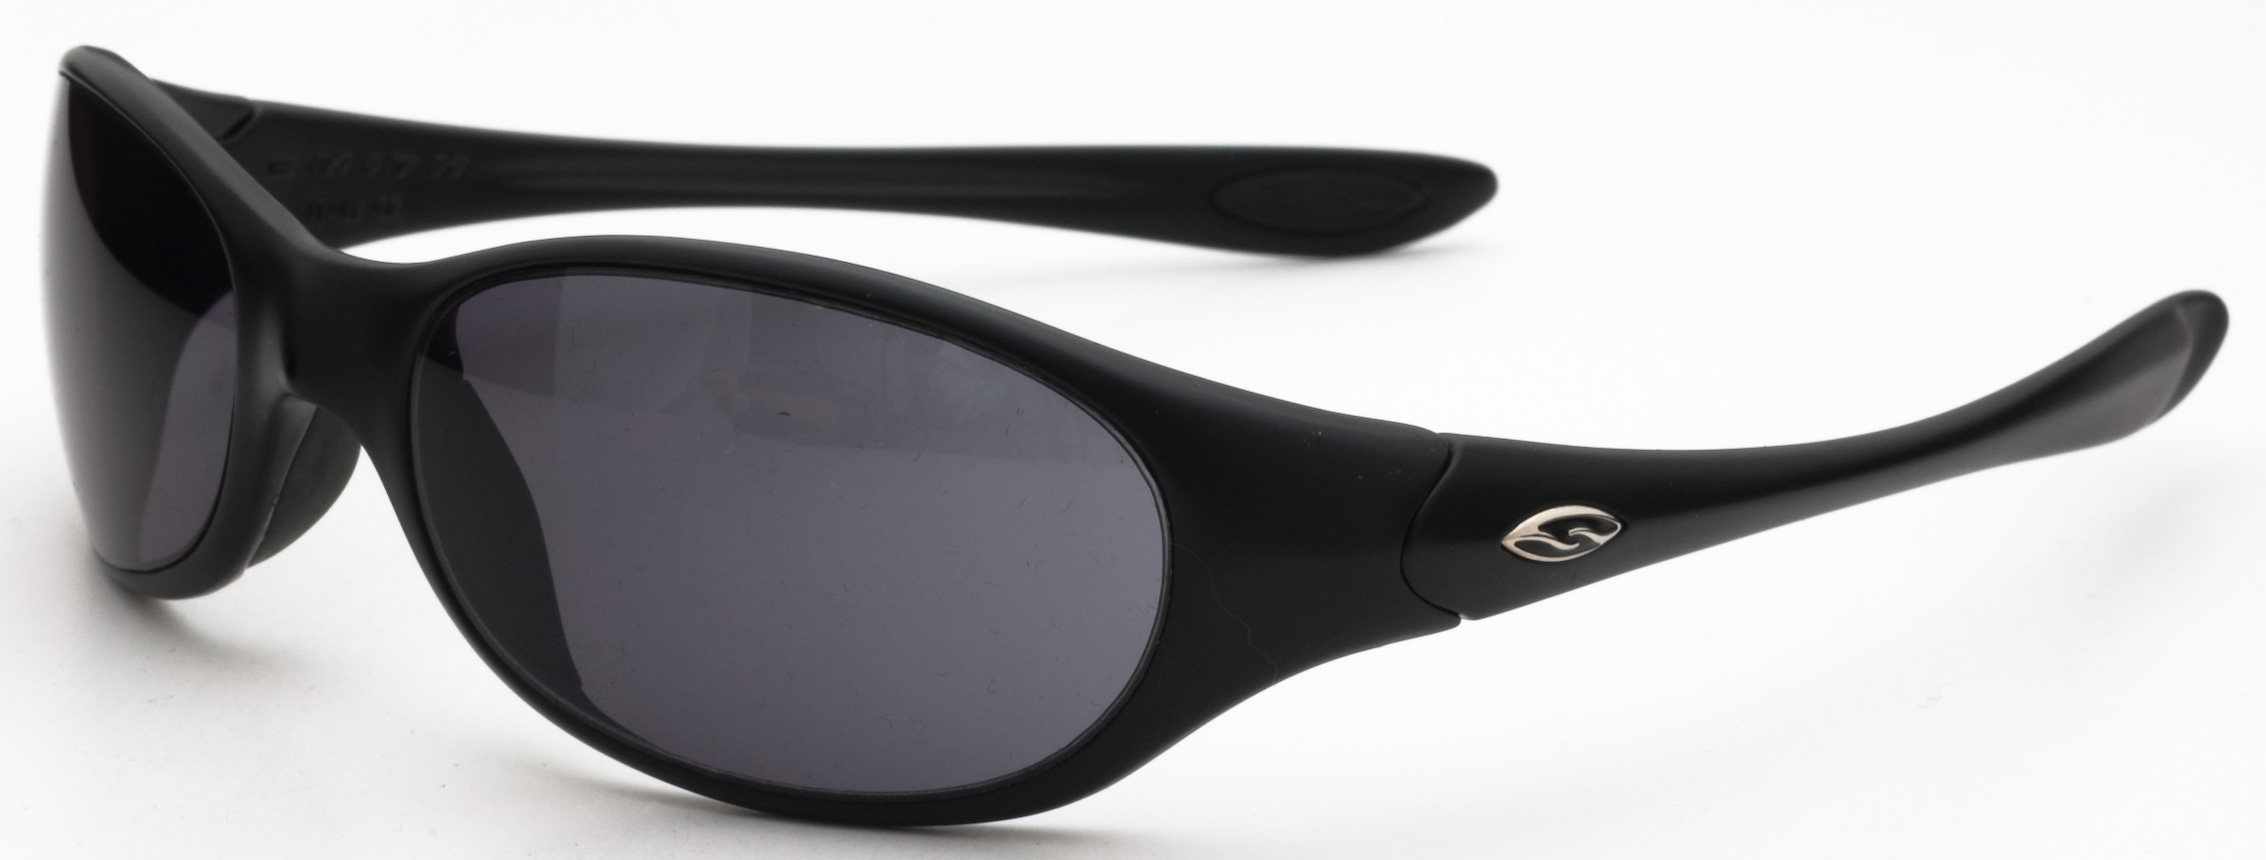 rival-sunglasses-black-with-grey-polycarbonate-lenses